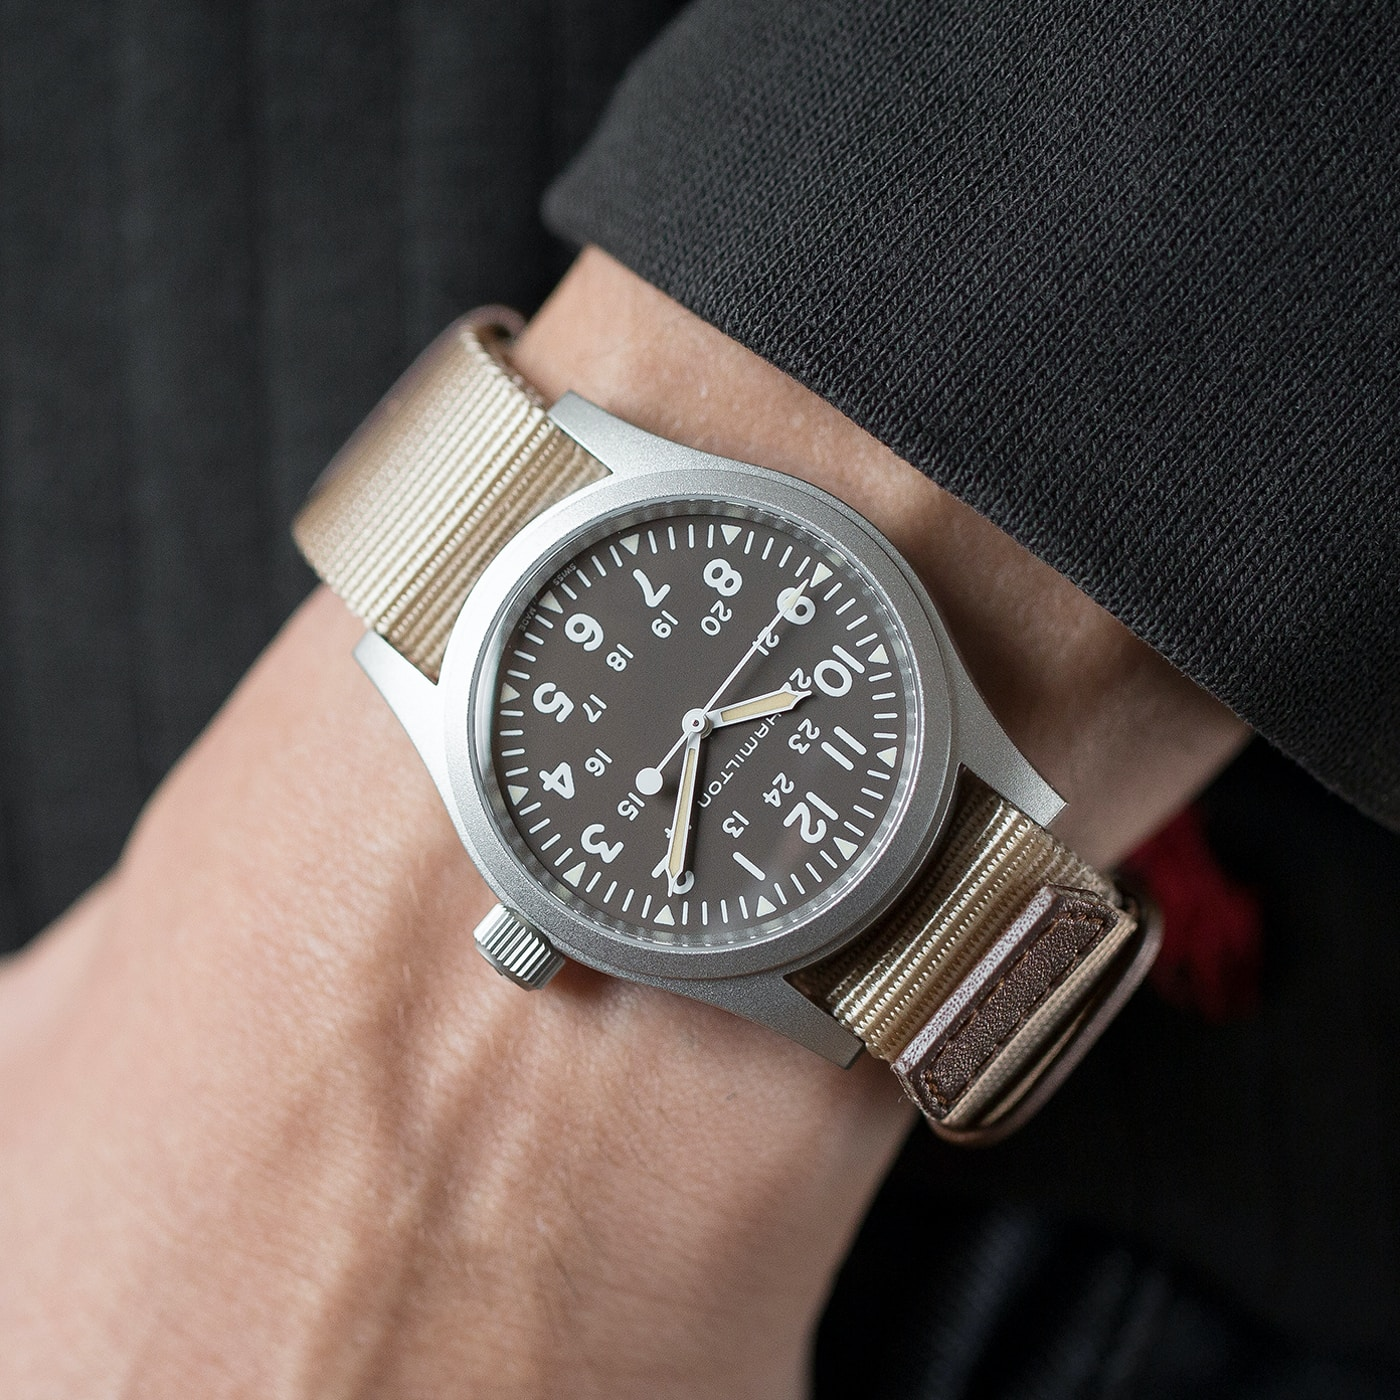 Introducing The Hamilton Khaki Field Mechanical Now With A Brown